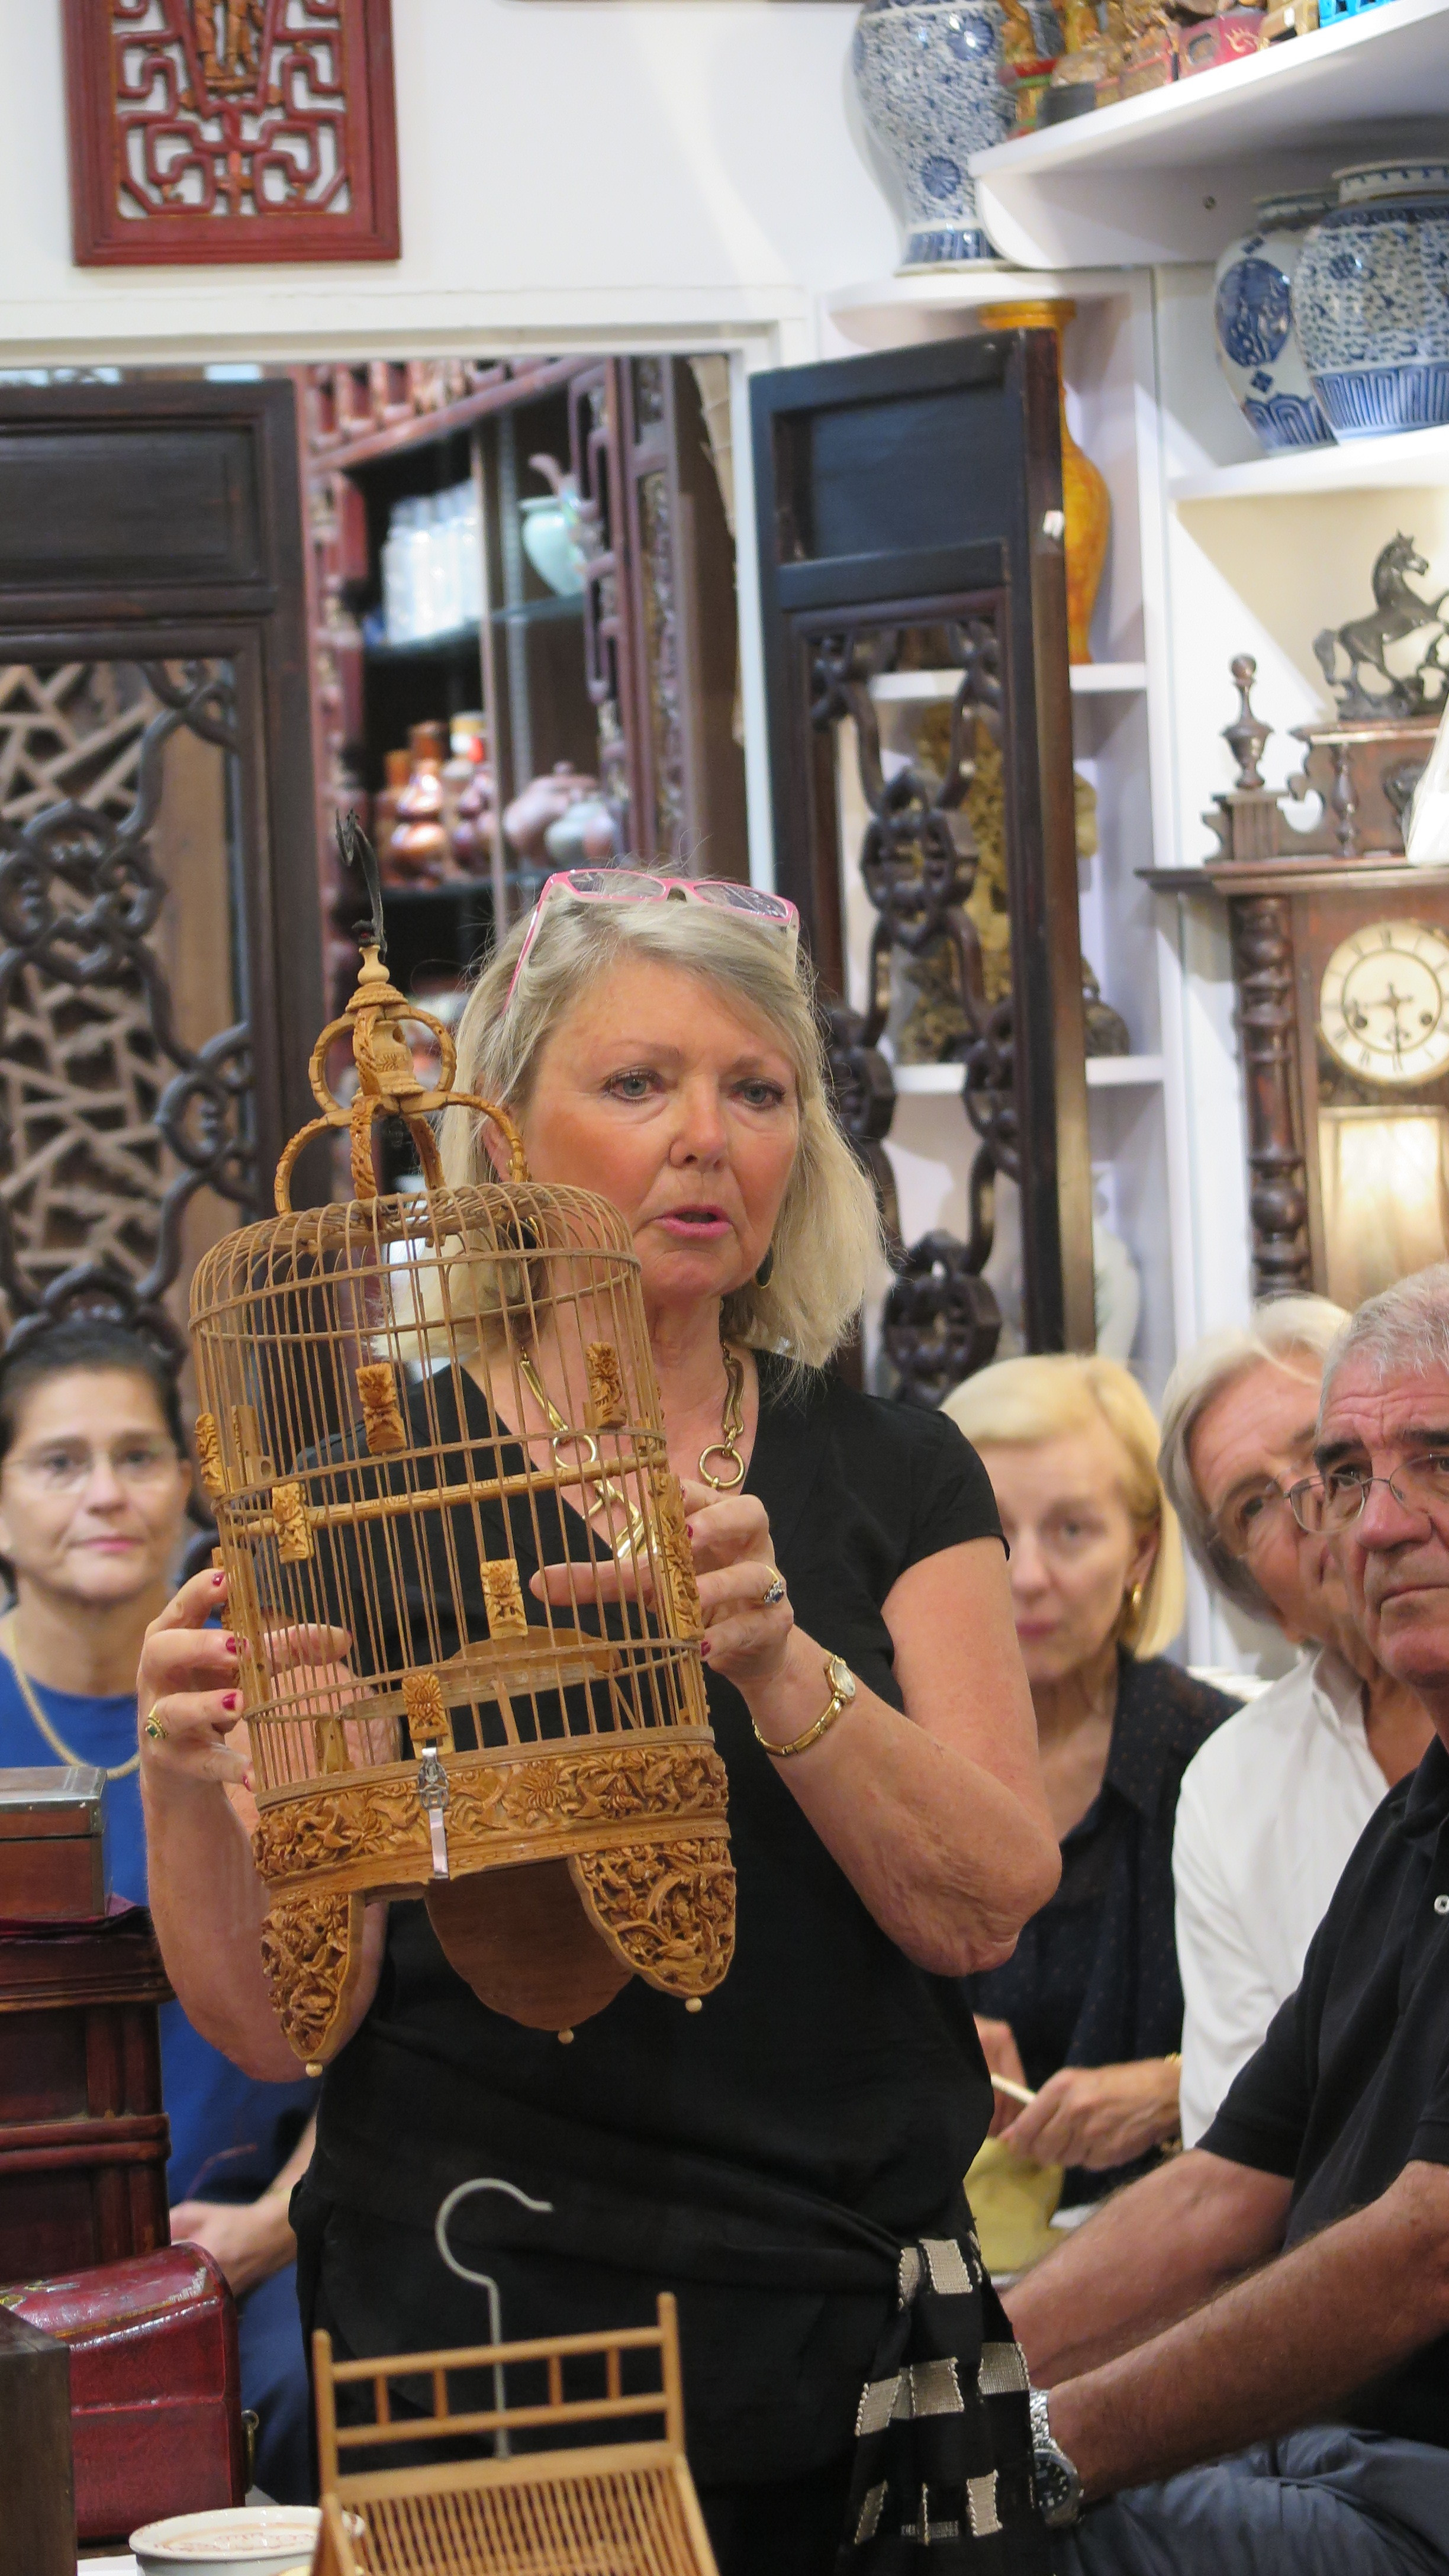 Our guest speaker Annig Huchet from APSARA explaining the details on an intricately hand carved birdcage